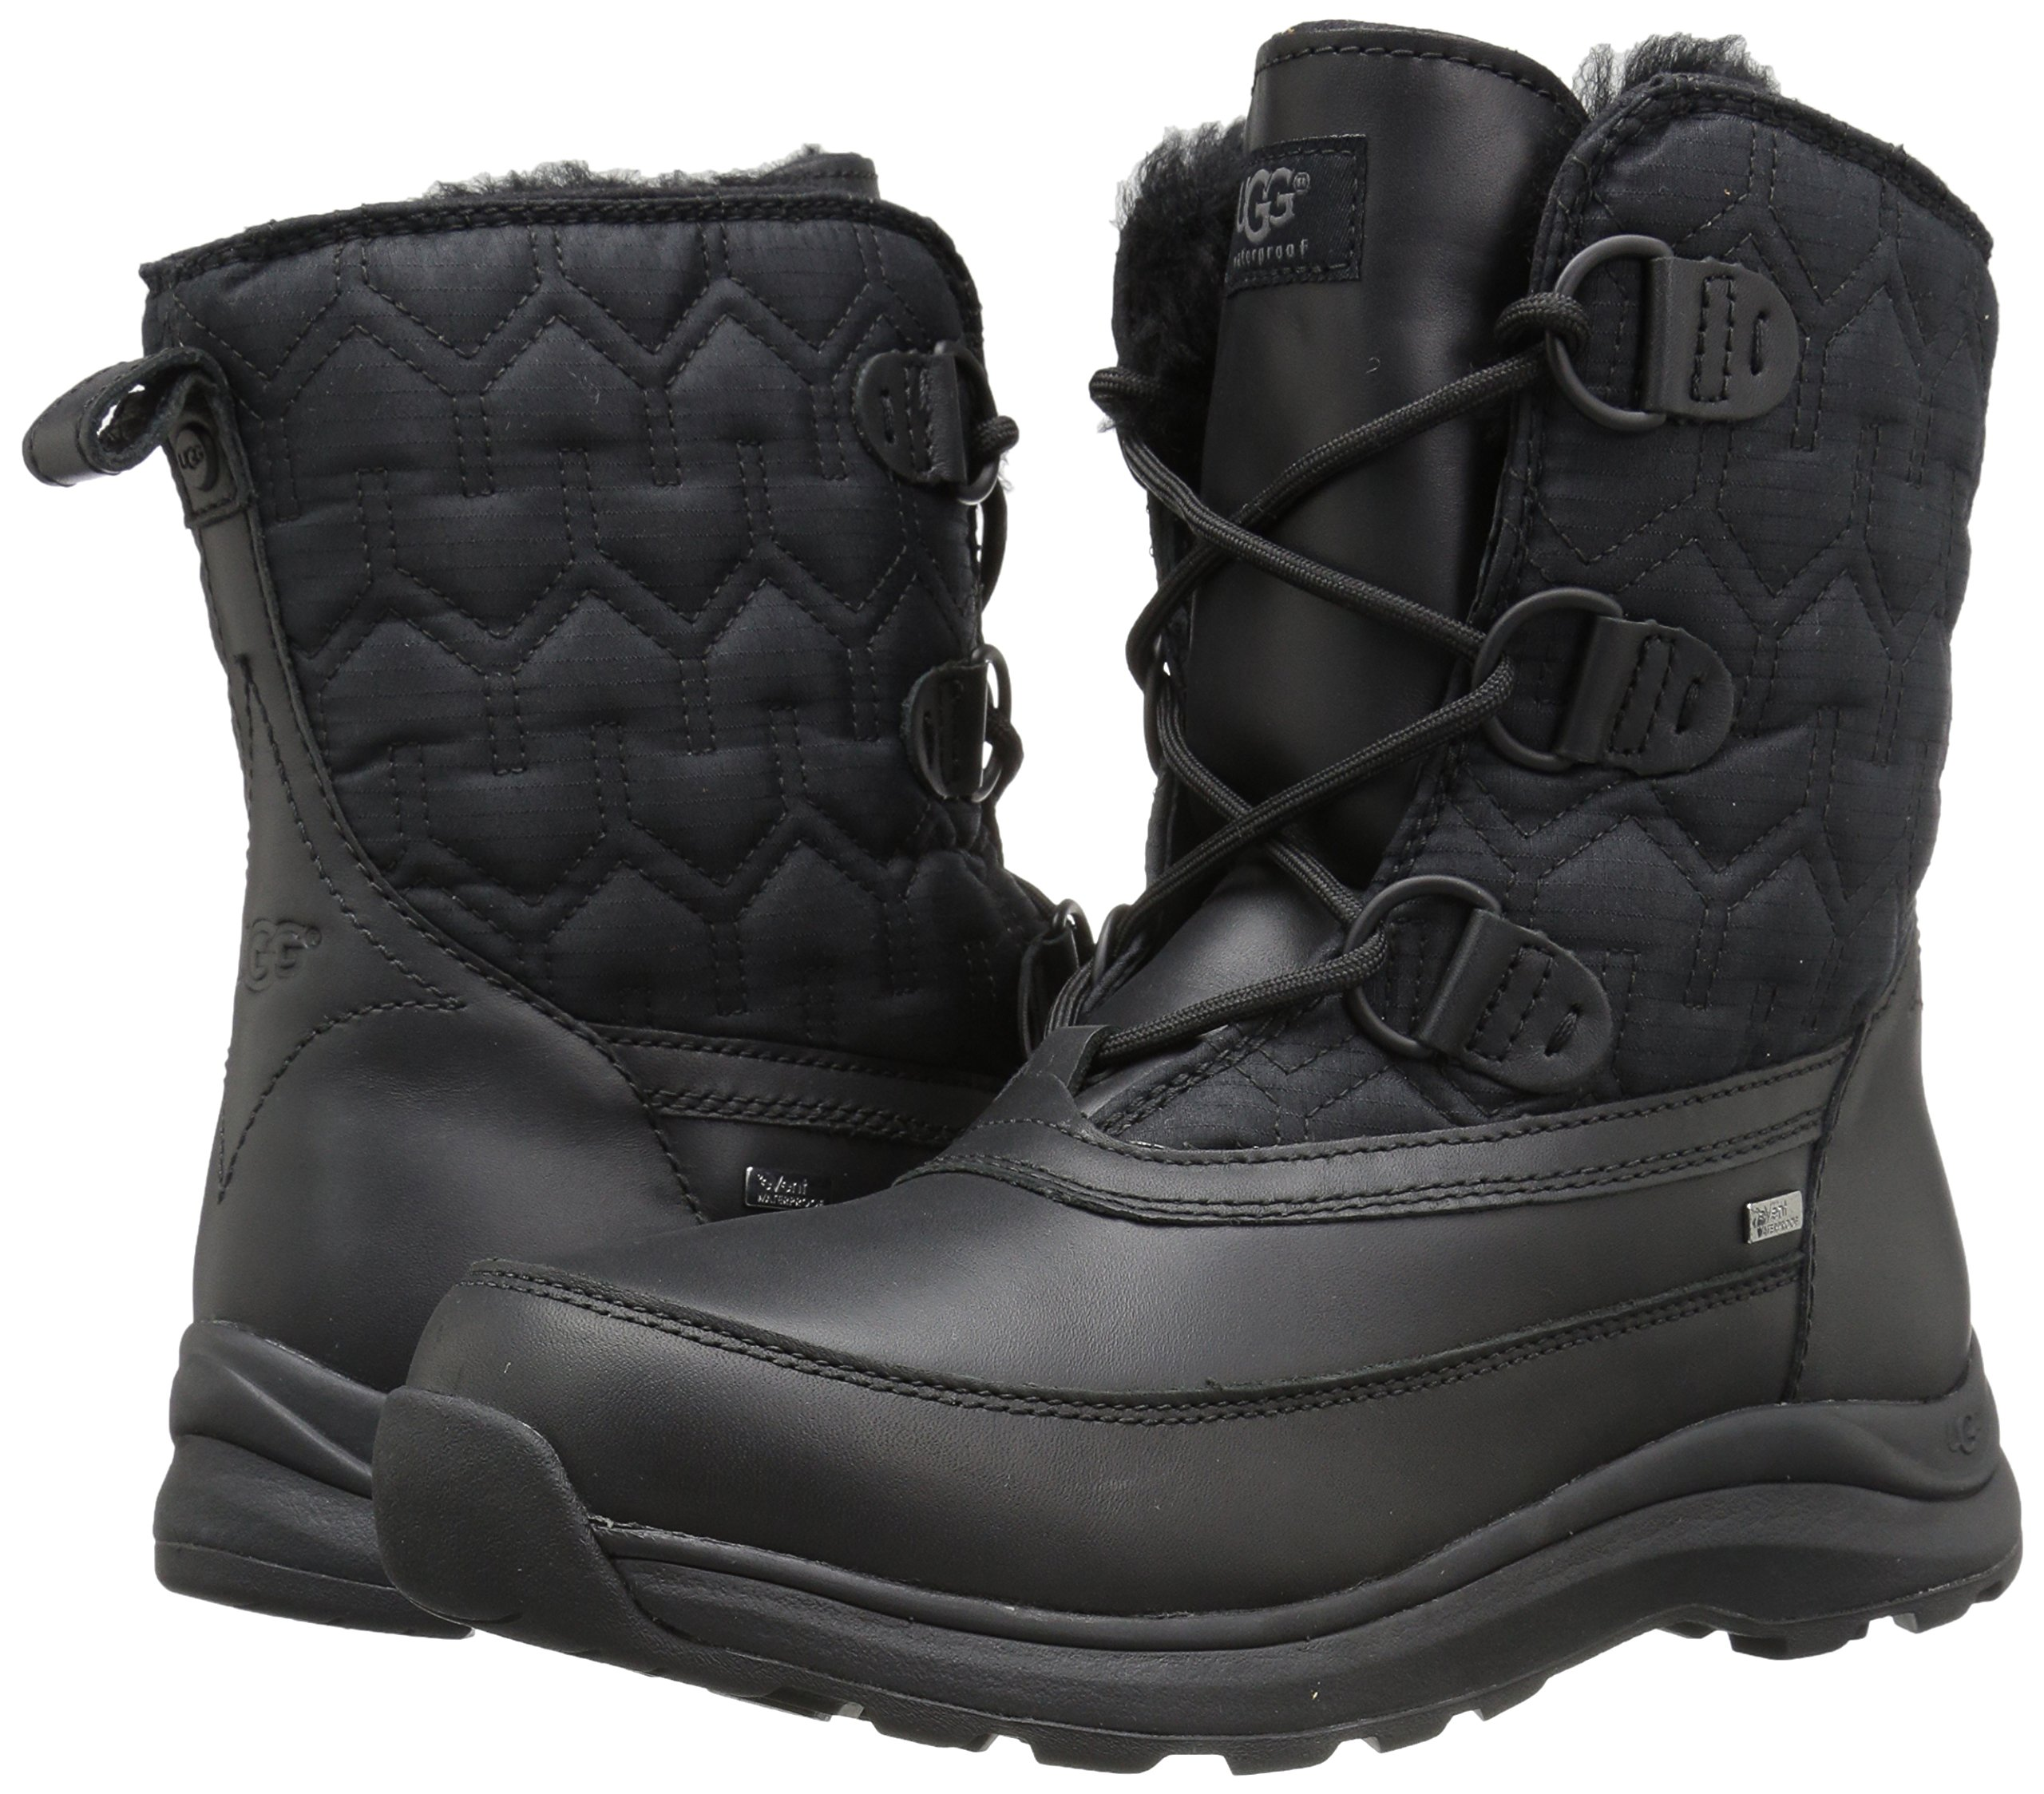 UGG Women's Lachlan Winter Boot, Black, 8 M US by UGG (Image #6)